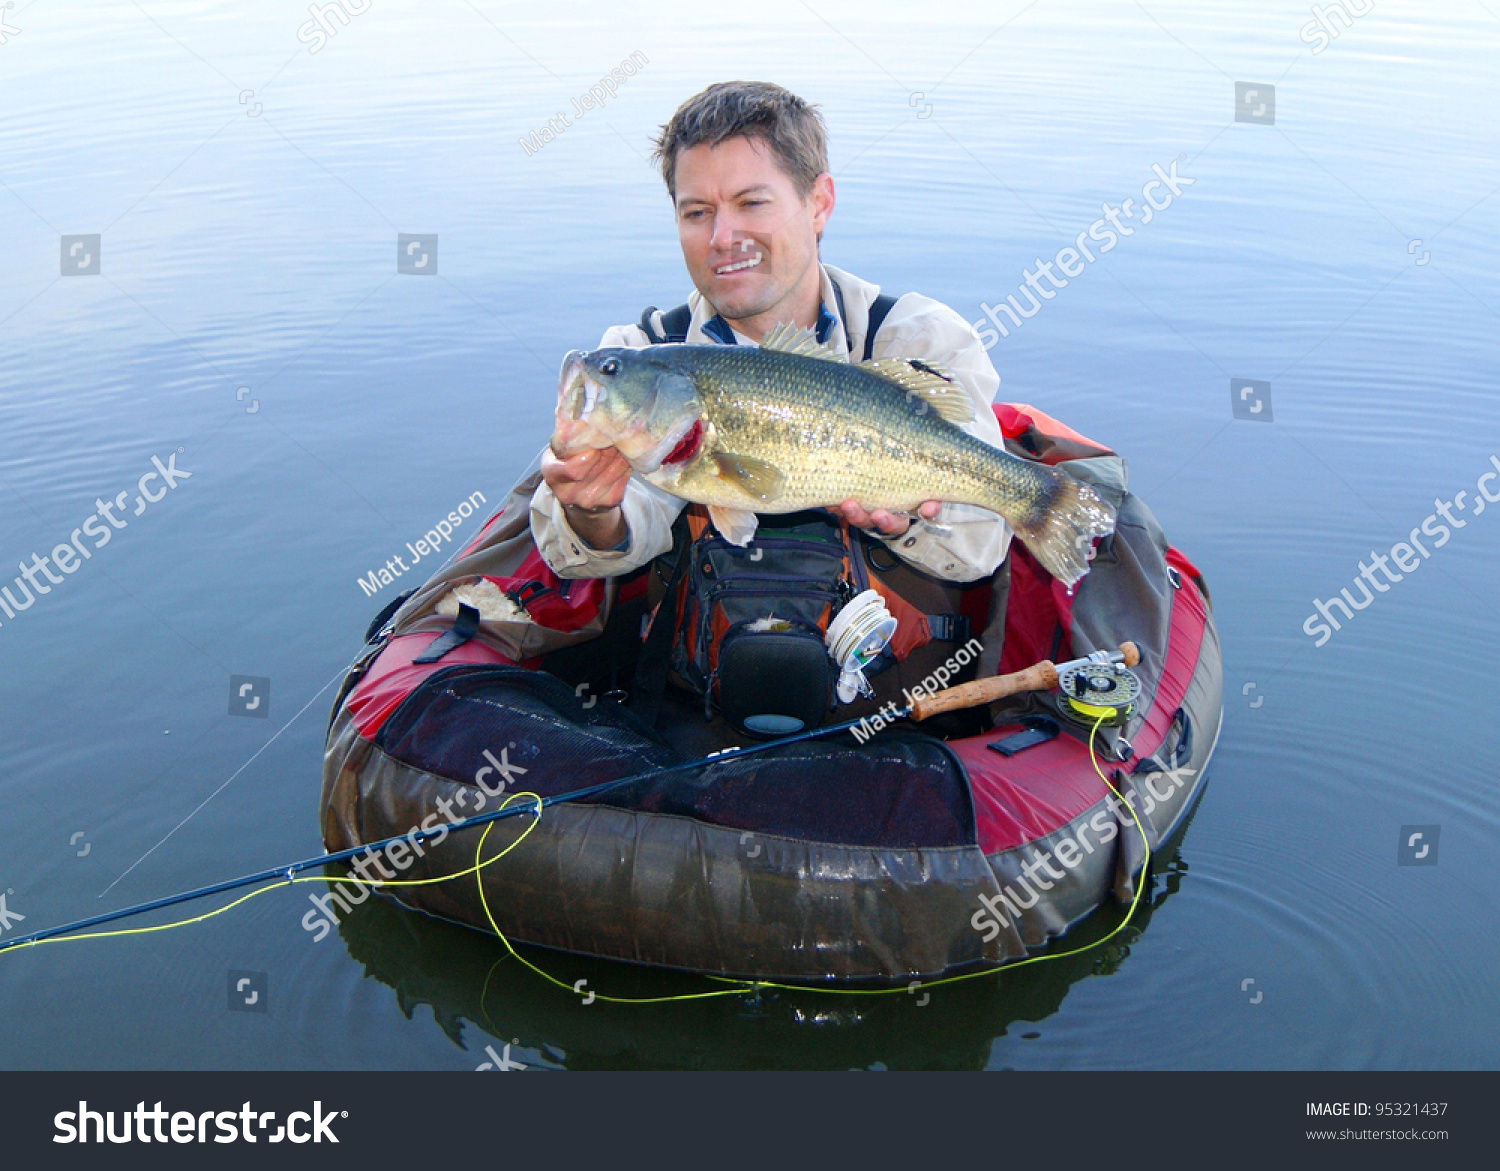 Fly fisherman pontoon float tube belly stock photo for Fly fishing float tube